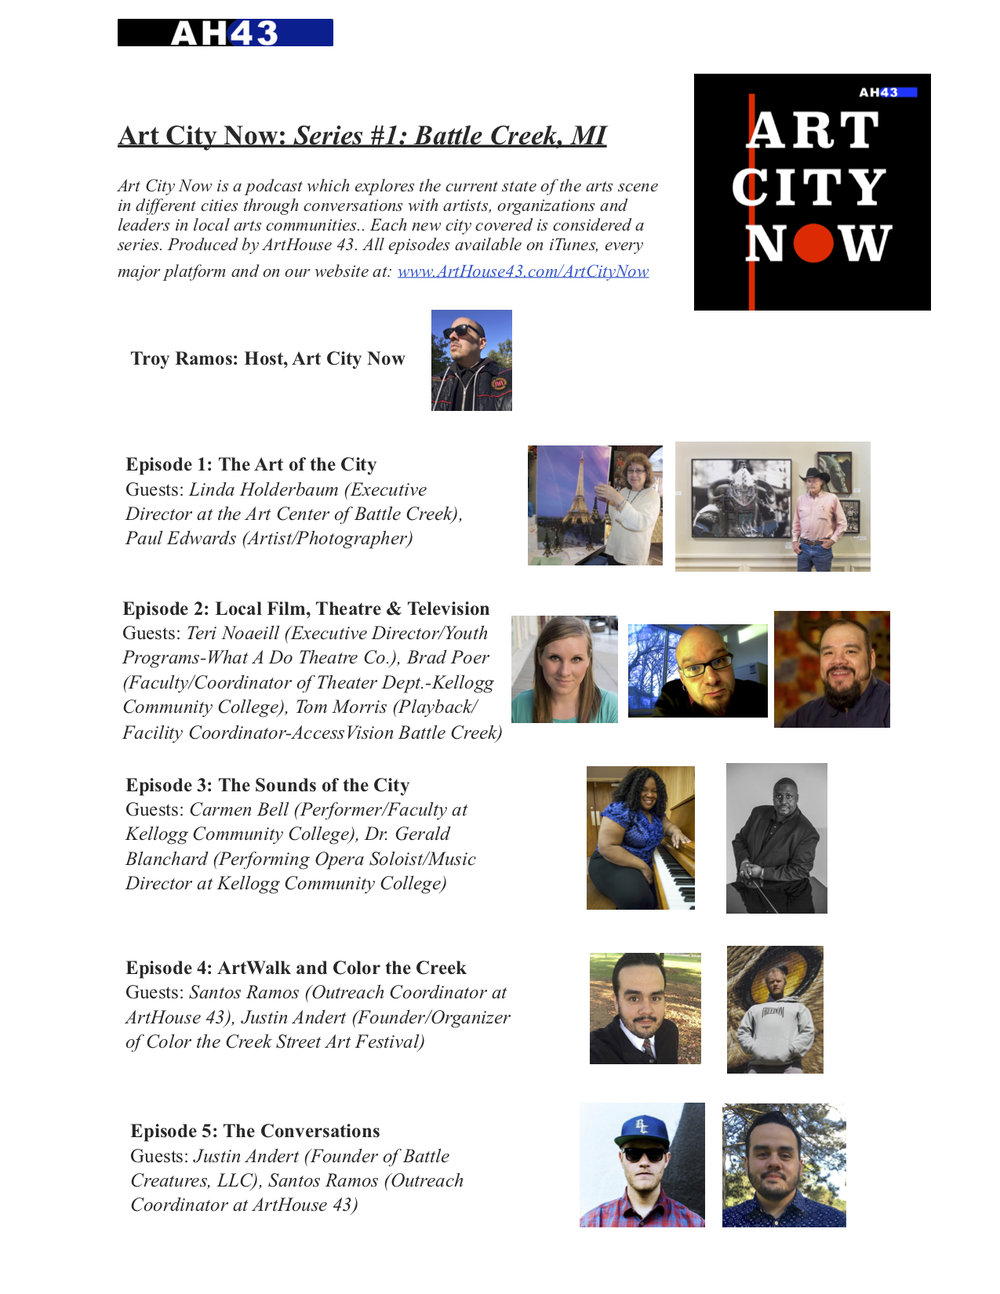 Art City Now Official Press Release P3.jpg